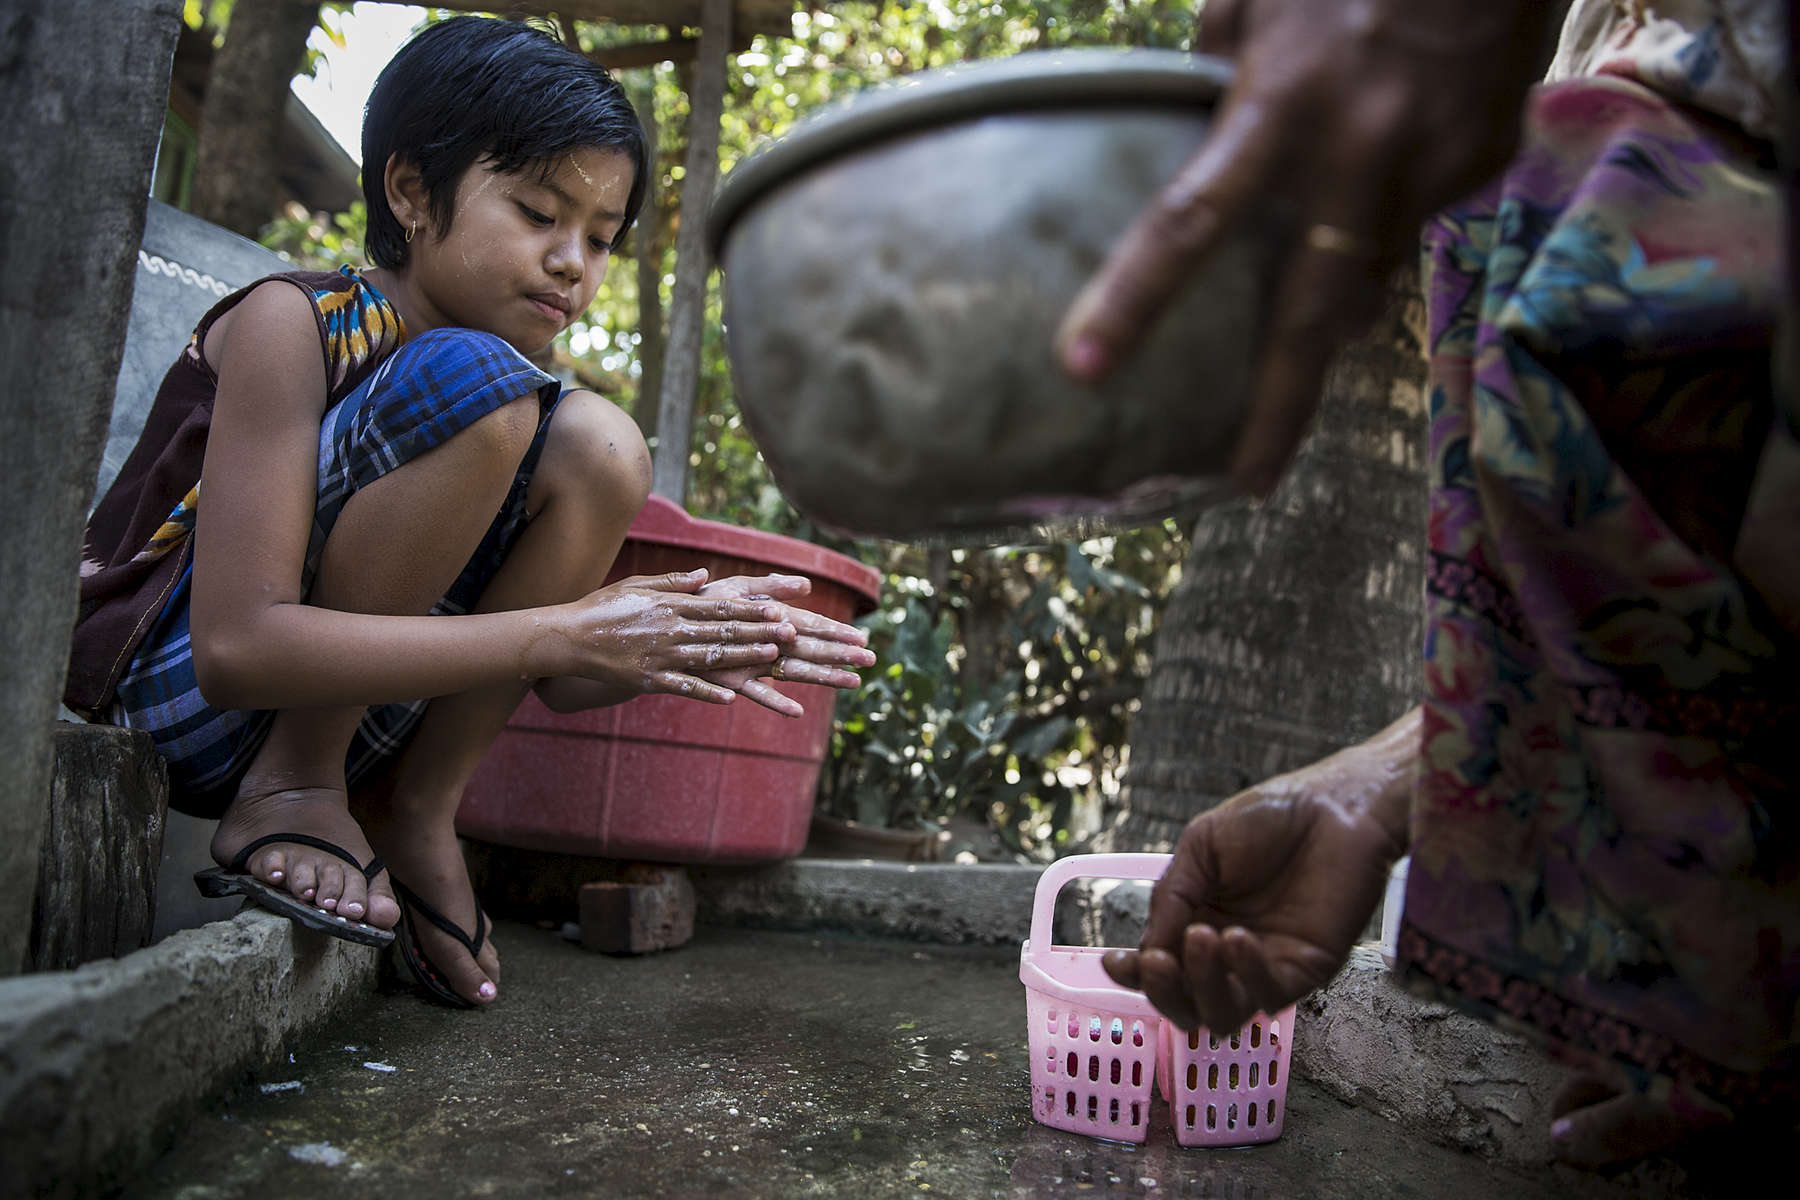 Zin Yun Su Su Hlaing washes her hands after coming home from school in Kwe Ma village. The Australian Red Cross in partnership with Myanmar Red Cross has been carrying out a Community Based Health & Resilience project in Kwe Ma and a number of other villages in central Myanmar. The CBHR project is working to educate and ensure sustainable changes to water and sanitation practices in these communities. A major part of the project is community education. Red Cross Volunteers from each community regularly run awareness campaigns throughout their village and regularly visit school where they use songs and poems to educate children about water and sanitation, first aid and disaster risk reduction.